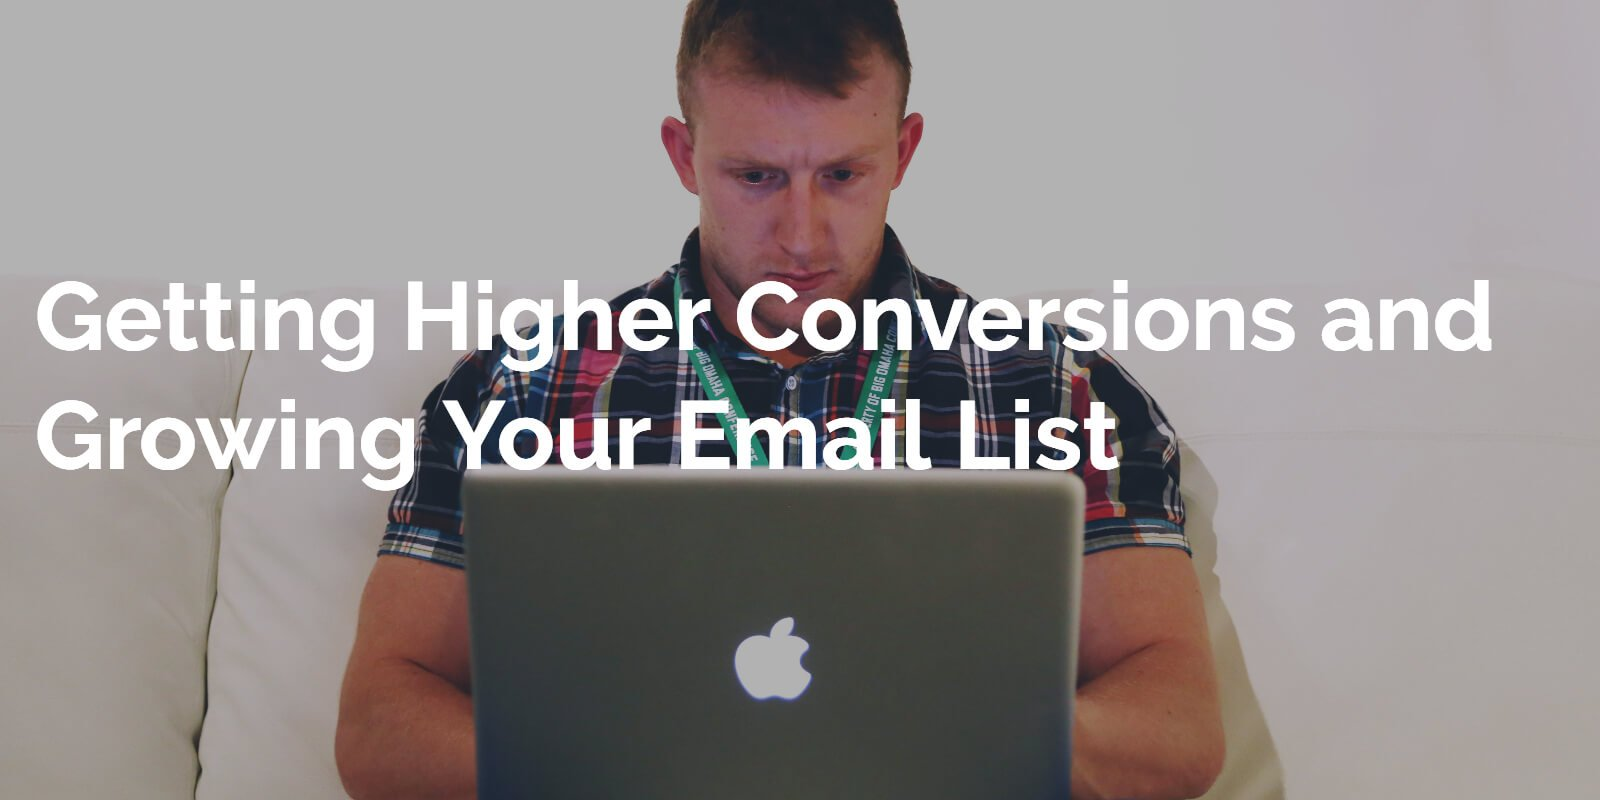 Getting Higher Conversions and Growing Your Email List